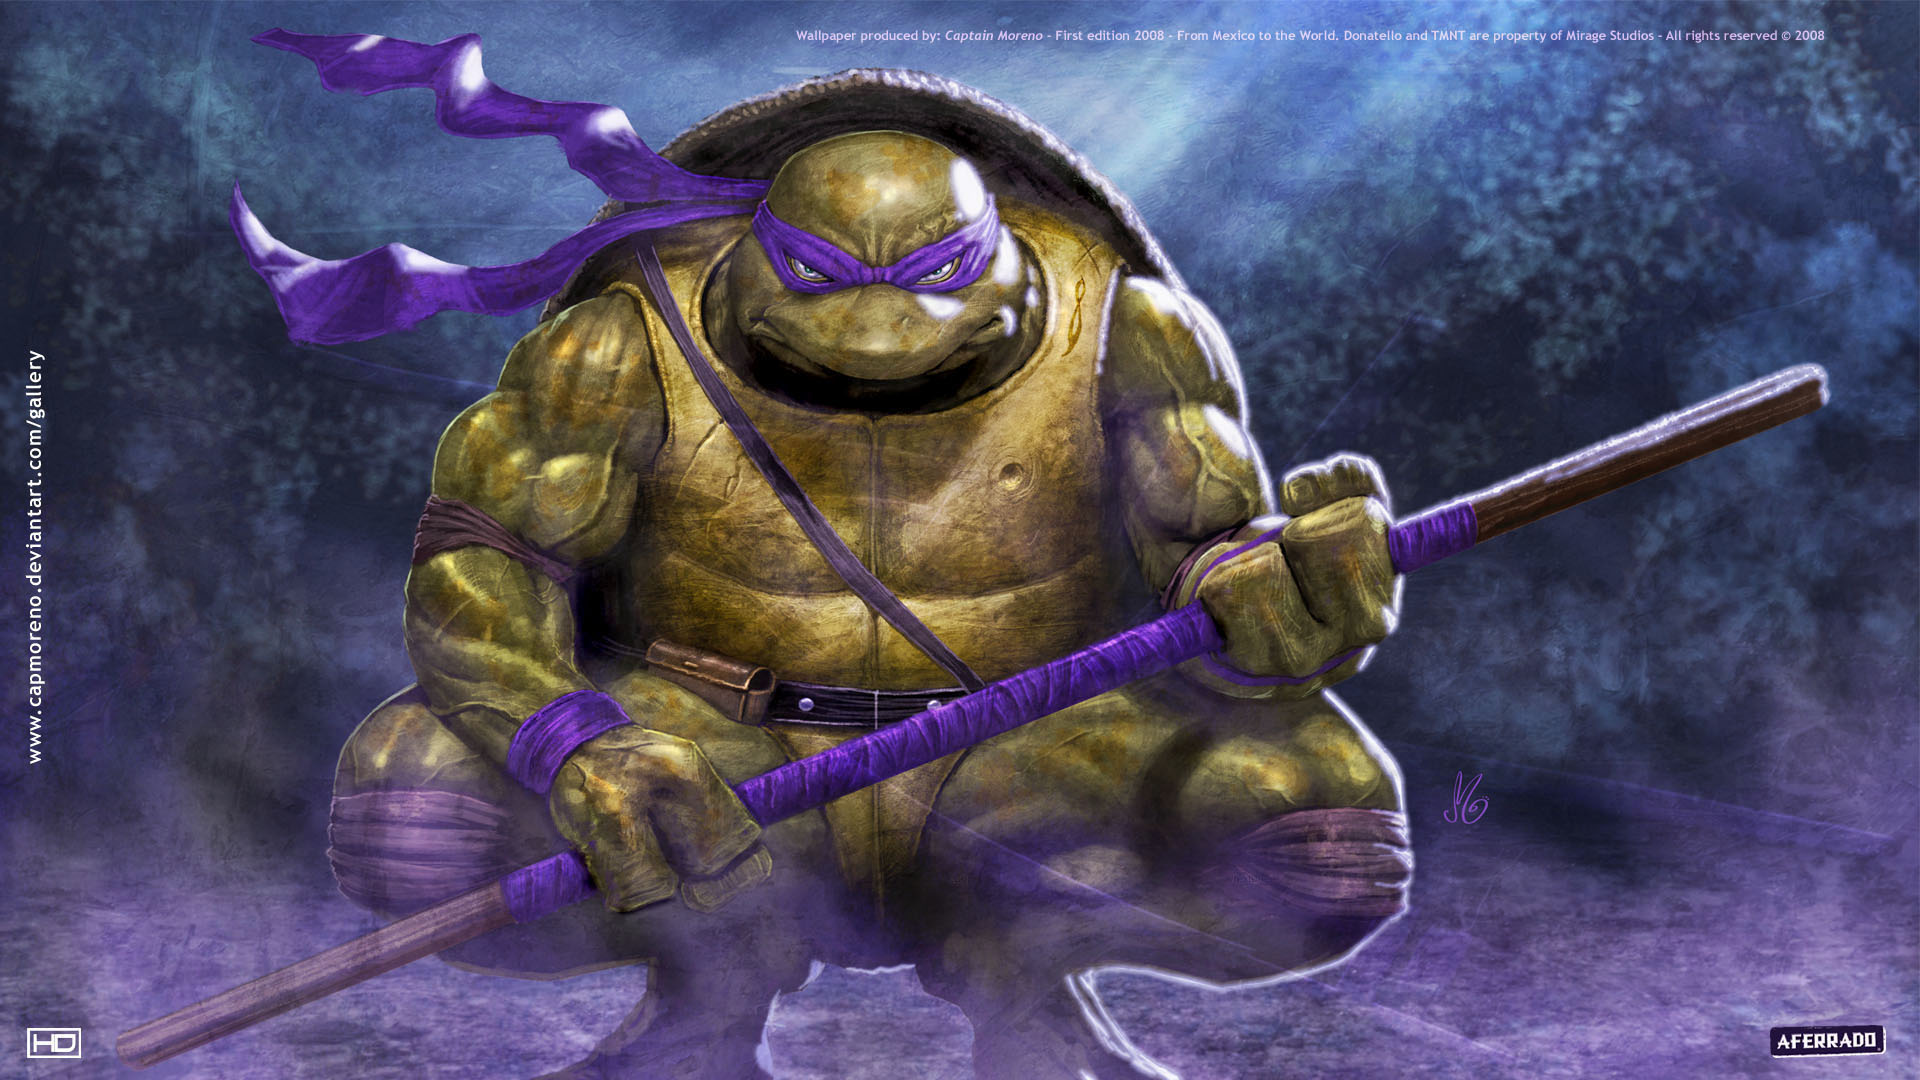 http://fc09.deviantart.com/fs29/f/2008/112/2/b/DONNIE_TMNT_HD_WALLPAPER_by_CapMoreno.jpg